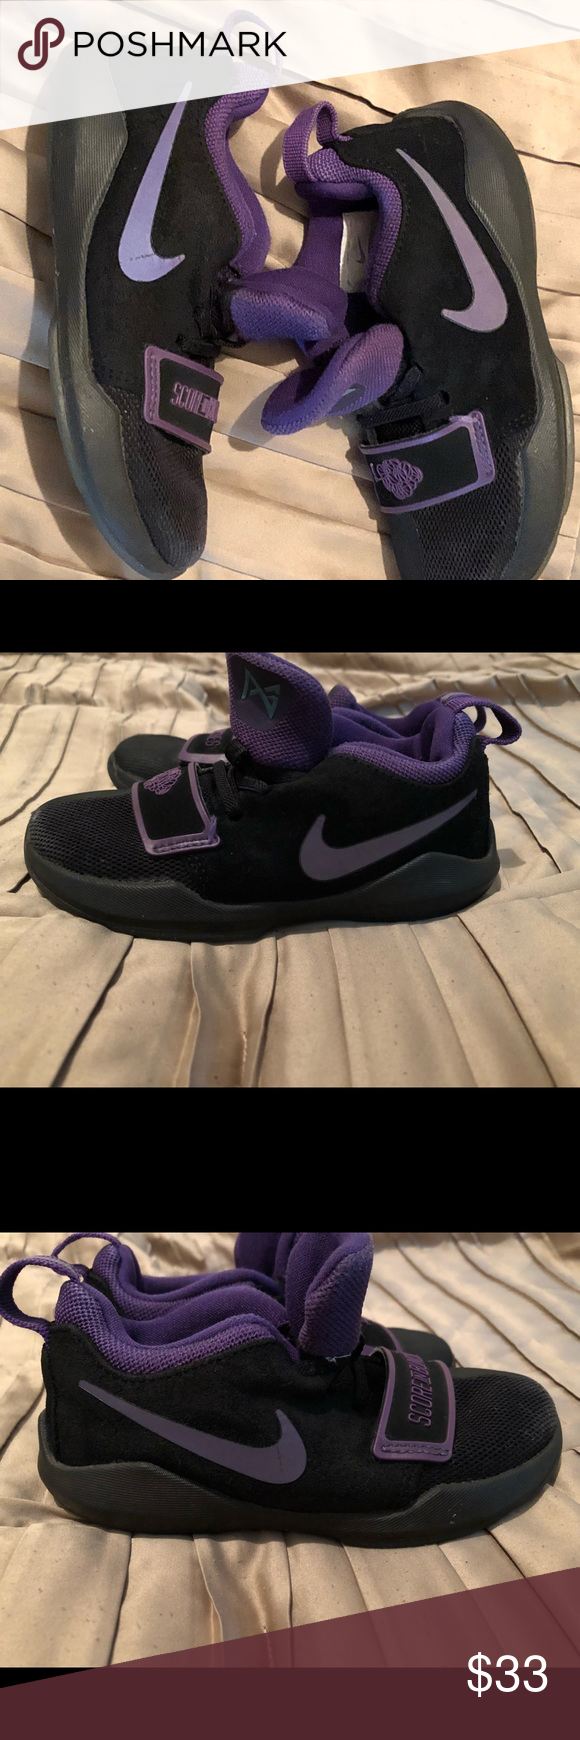 53bfa068f4c2 FINAL PRICE 🛑‼ Toddler Nike PG 1